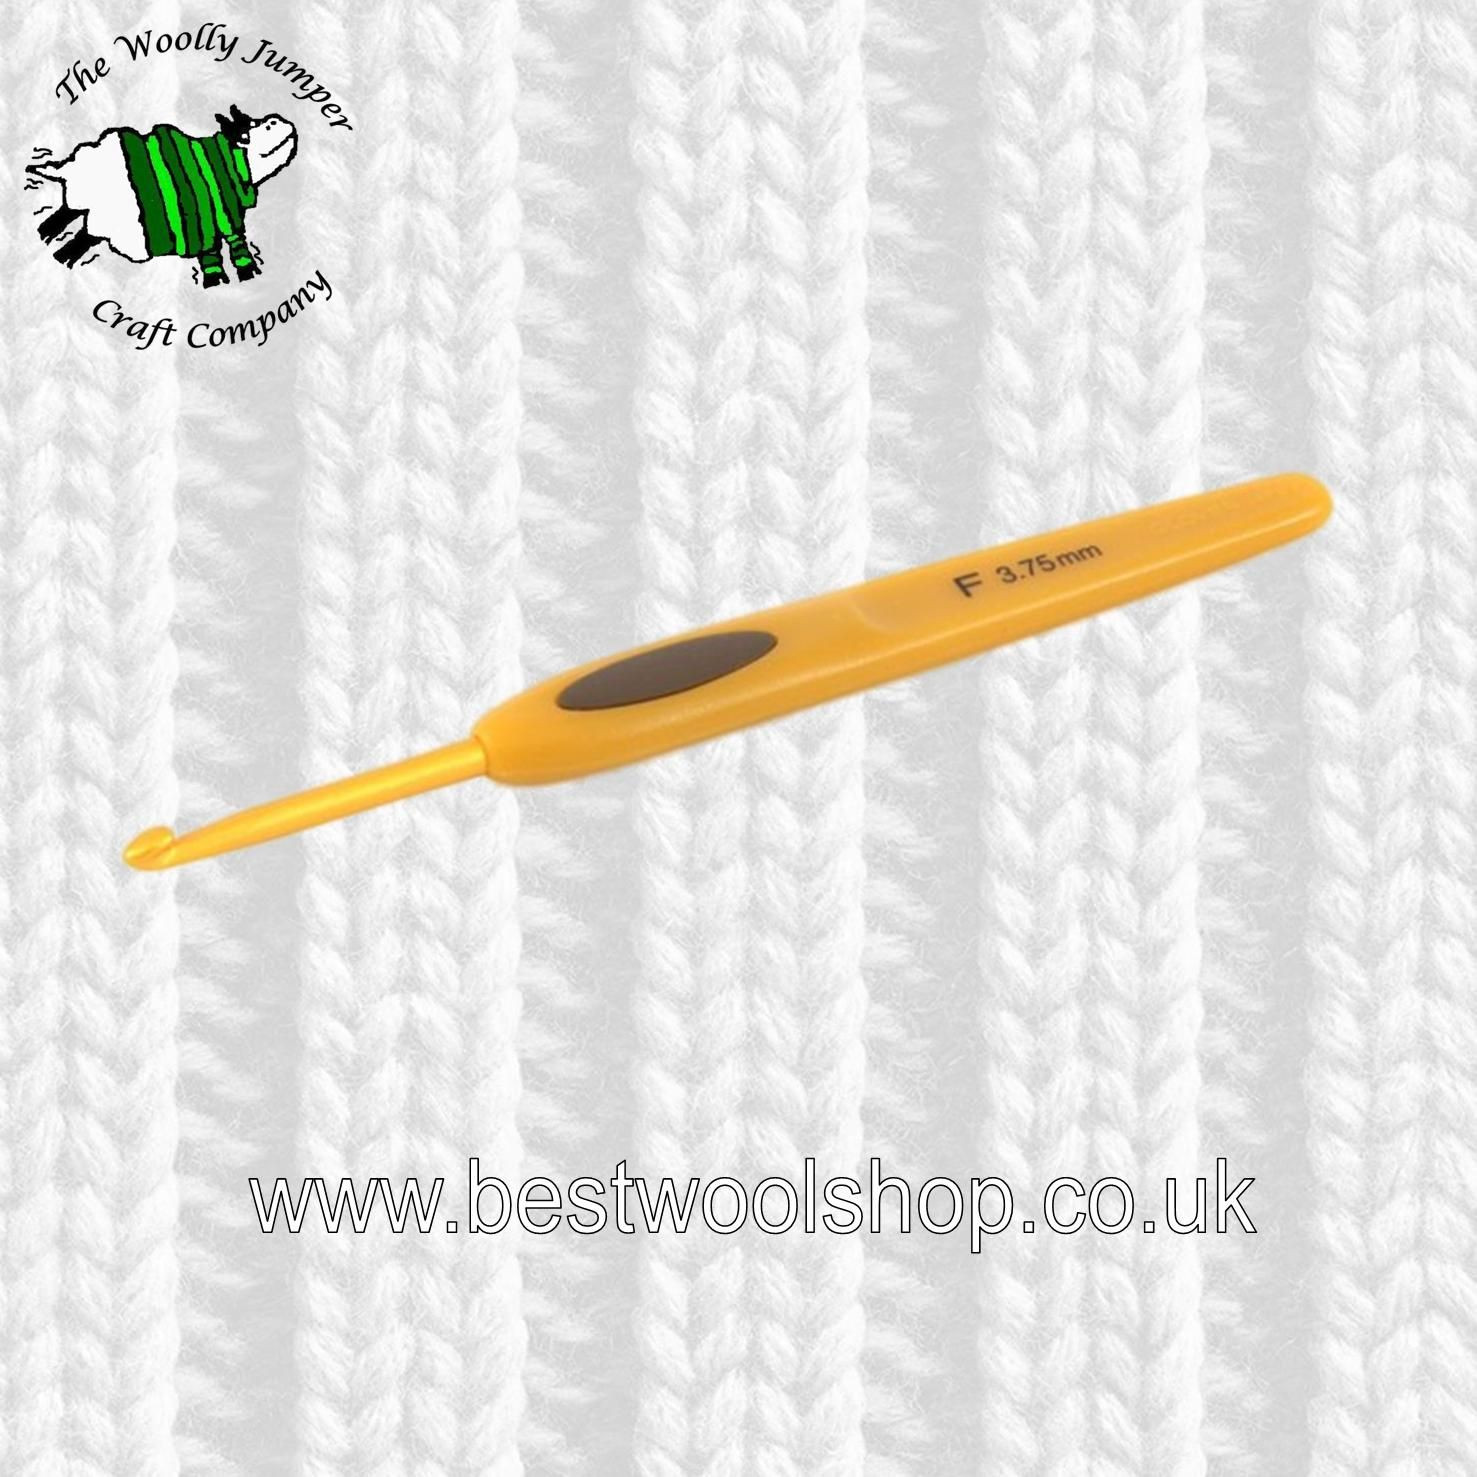 Elegant 3 75 Mm Clover soft touch Crochet Hook F Clover soft touch Crochet Hooks Of Fresh Clover soft touch Crochet Hook Size 7 Clover soft touch Crochet Hooks